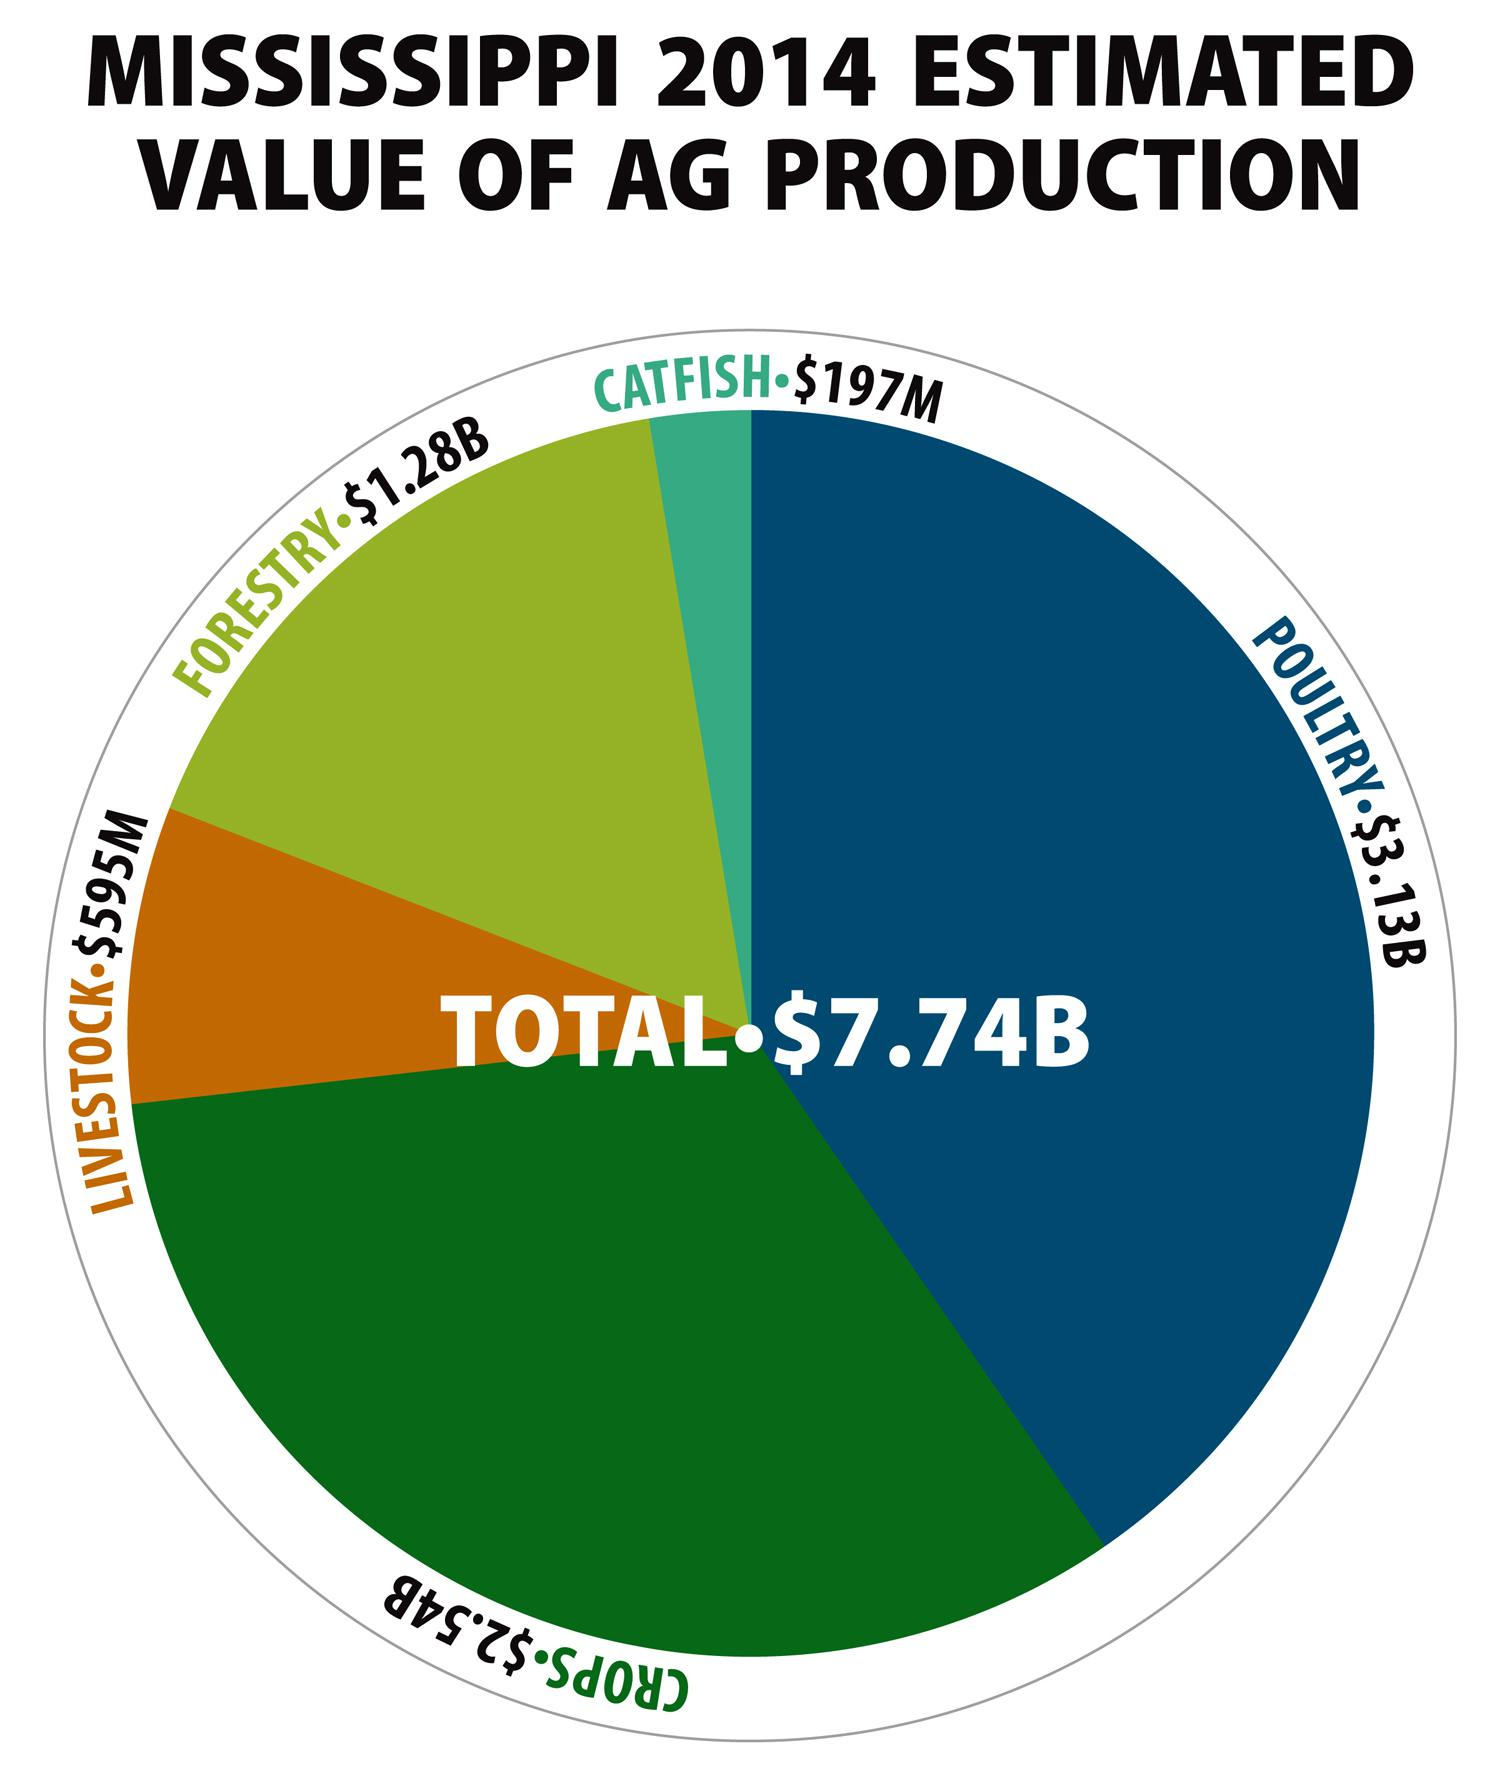 Mississippi 2014 Estimated Value of Ag Production